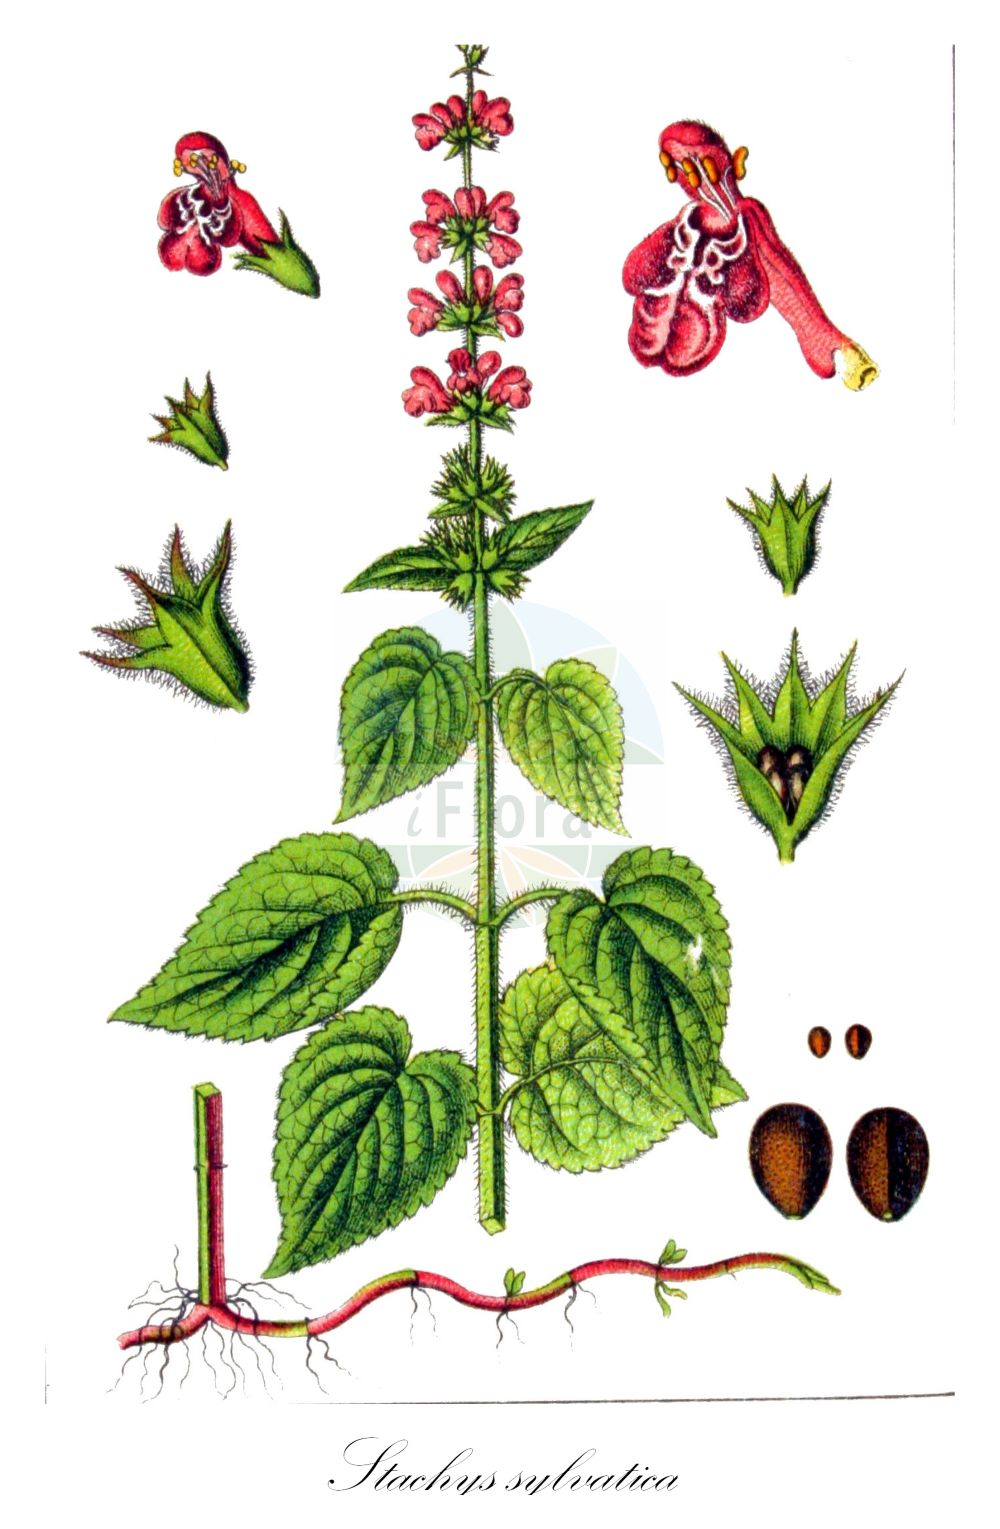 Historische Abbildung von Stachys sylvatica (Wald-Ziest - Hedge Woundwort). Das Bild zeigt Blatt, Bluete, Frucht und Same. ---- Historical Drawing of Stachys sylvatica (Wald-Ziest - Hedge Woundwort).The image is showing leaf, flower, fruit and seed.(Stachys sylvatica,Wald-Ziest,Hedge Woundwort,Stachys canariensis,Stachys cordata,Stachys cordatifolia,Stachys foetida,Stachys glaucescens,Stachys trapezuntea,Hedge Stachys,Whitespot,Wood Betony,Stachys,Ziest,Hedgenettle,Lamiaceae,Lippenbluetengewaechse;Lippenbluetler,Nettle family,Blatt,Bluete,Frucht,Same,leaf,flower,fruit,seed,Sturm (1796f))